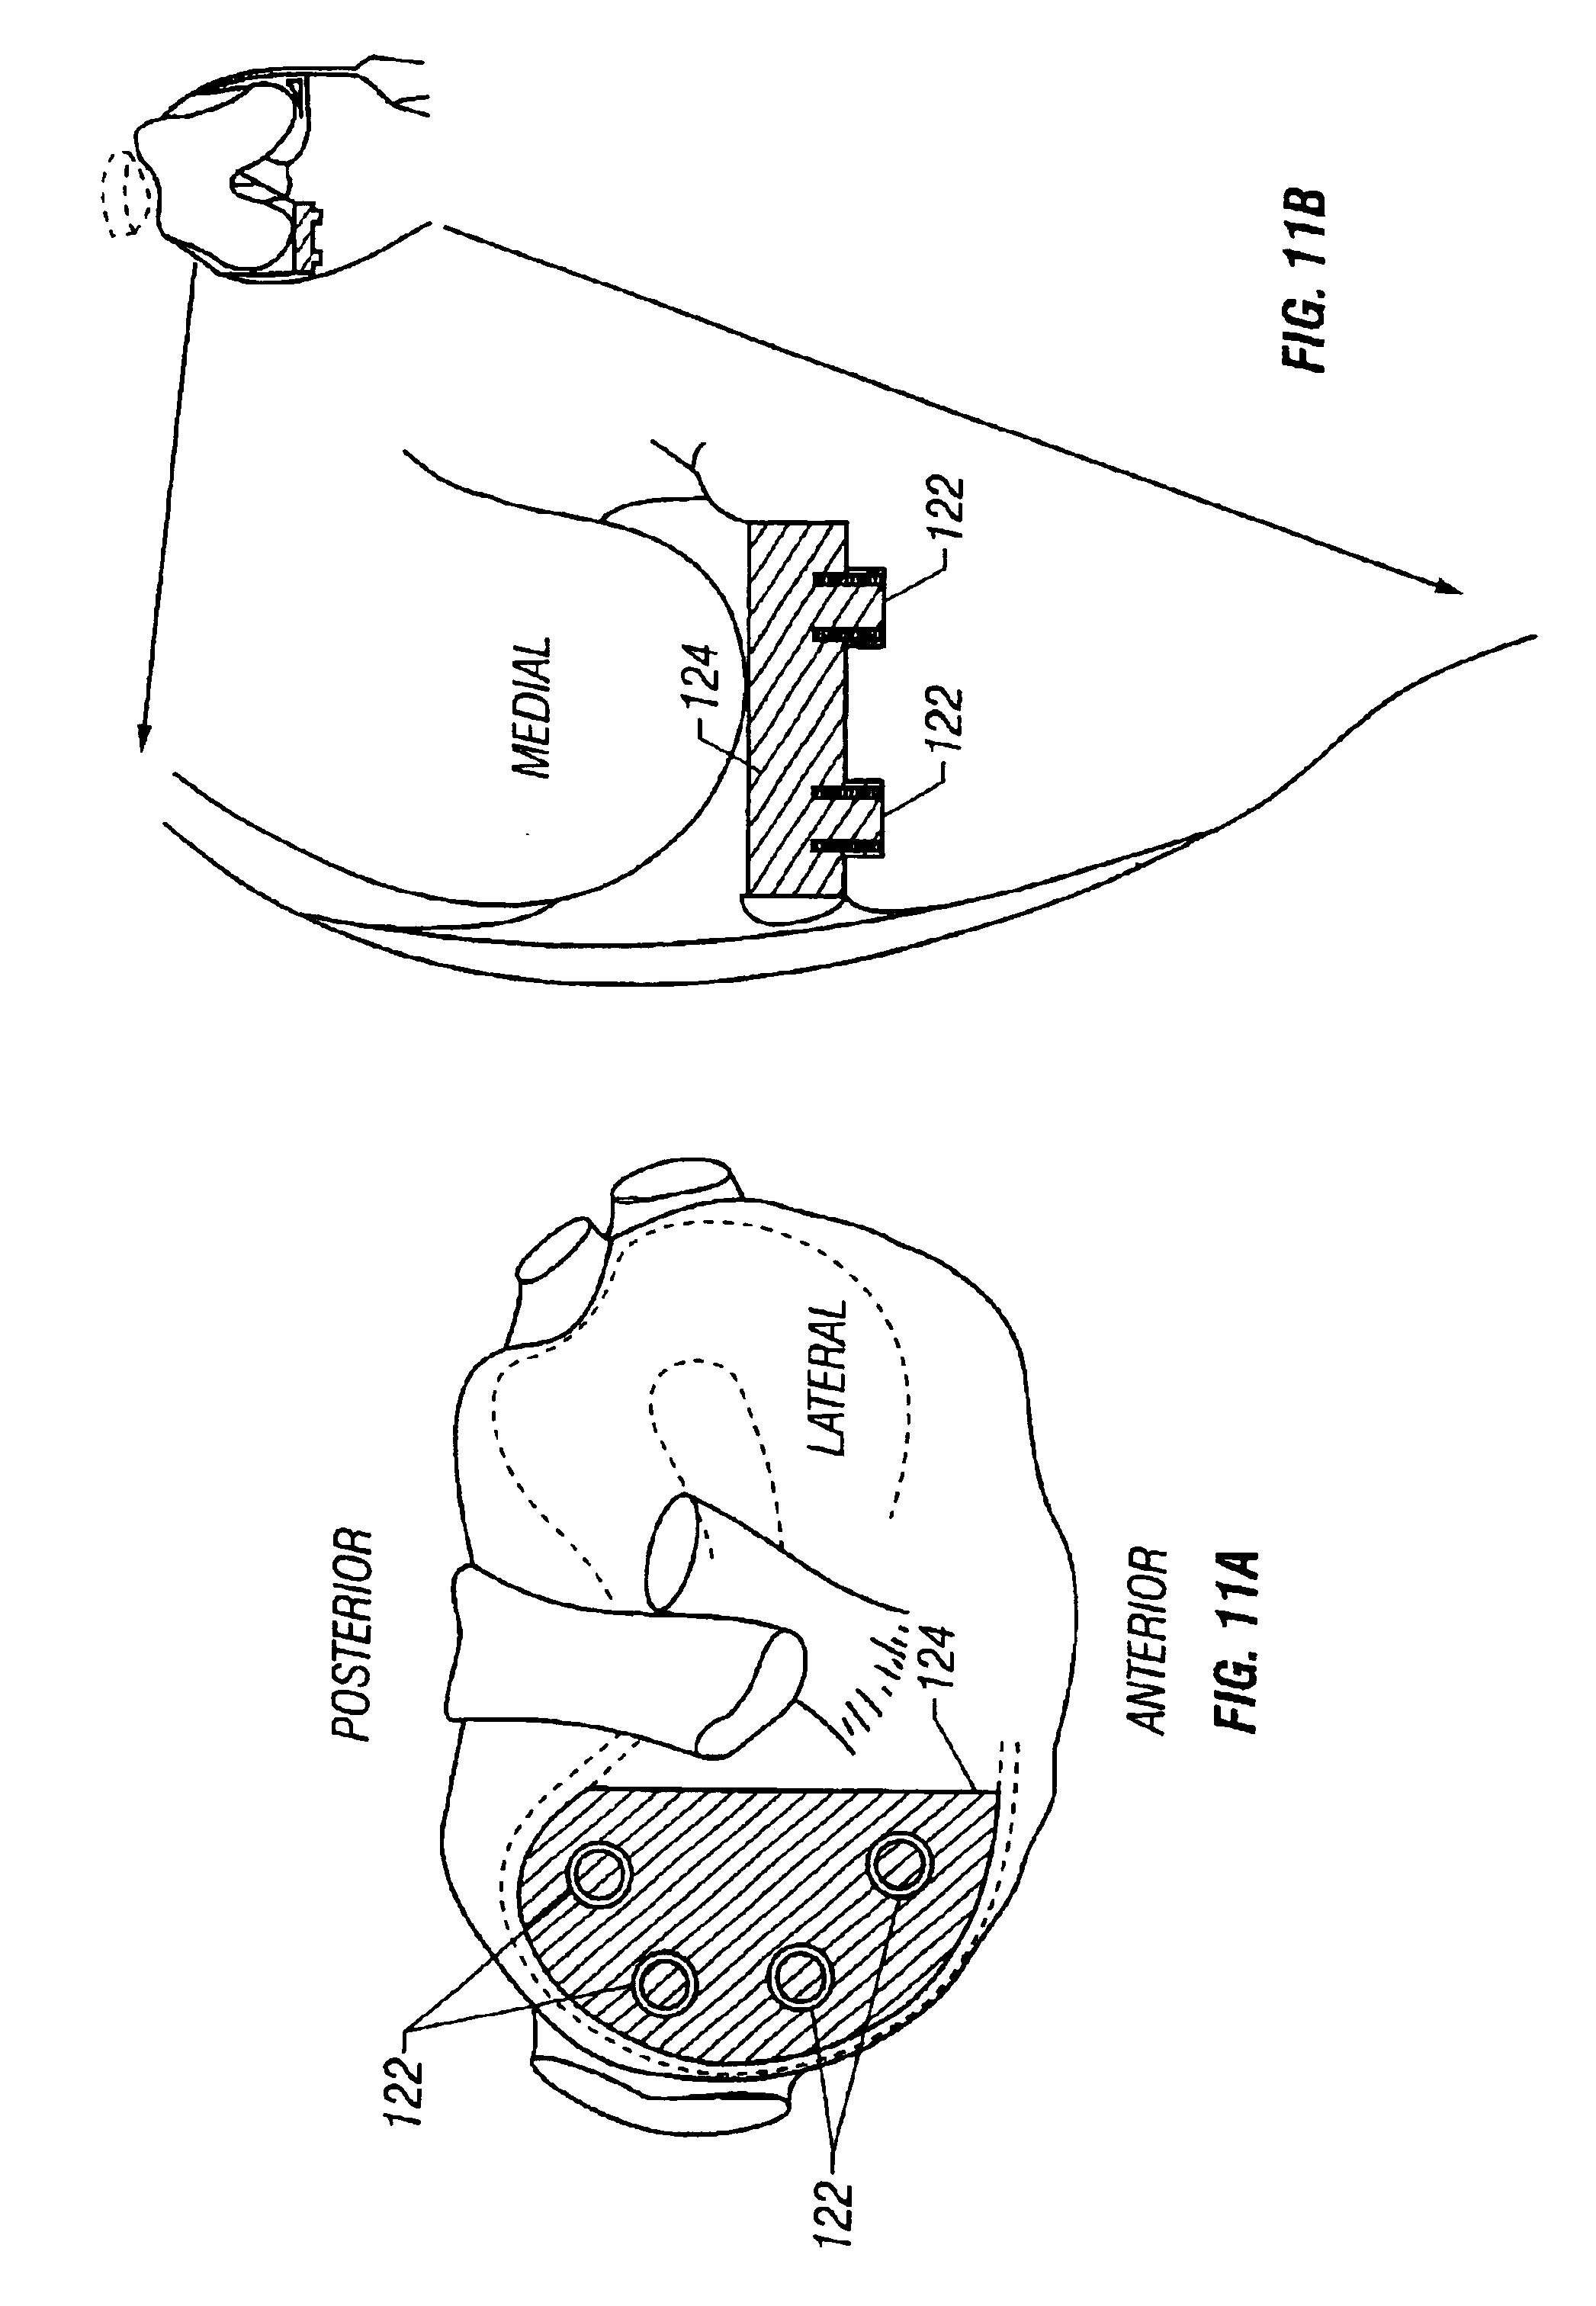 patent us6852125 - cartilage repair plug